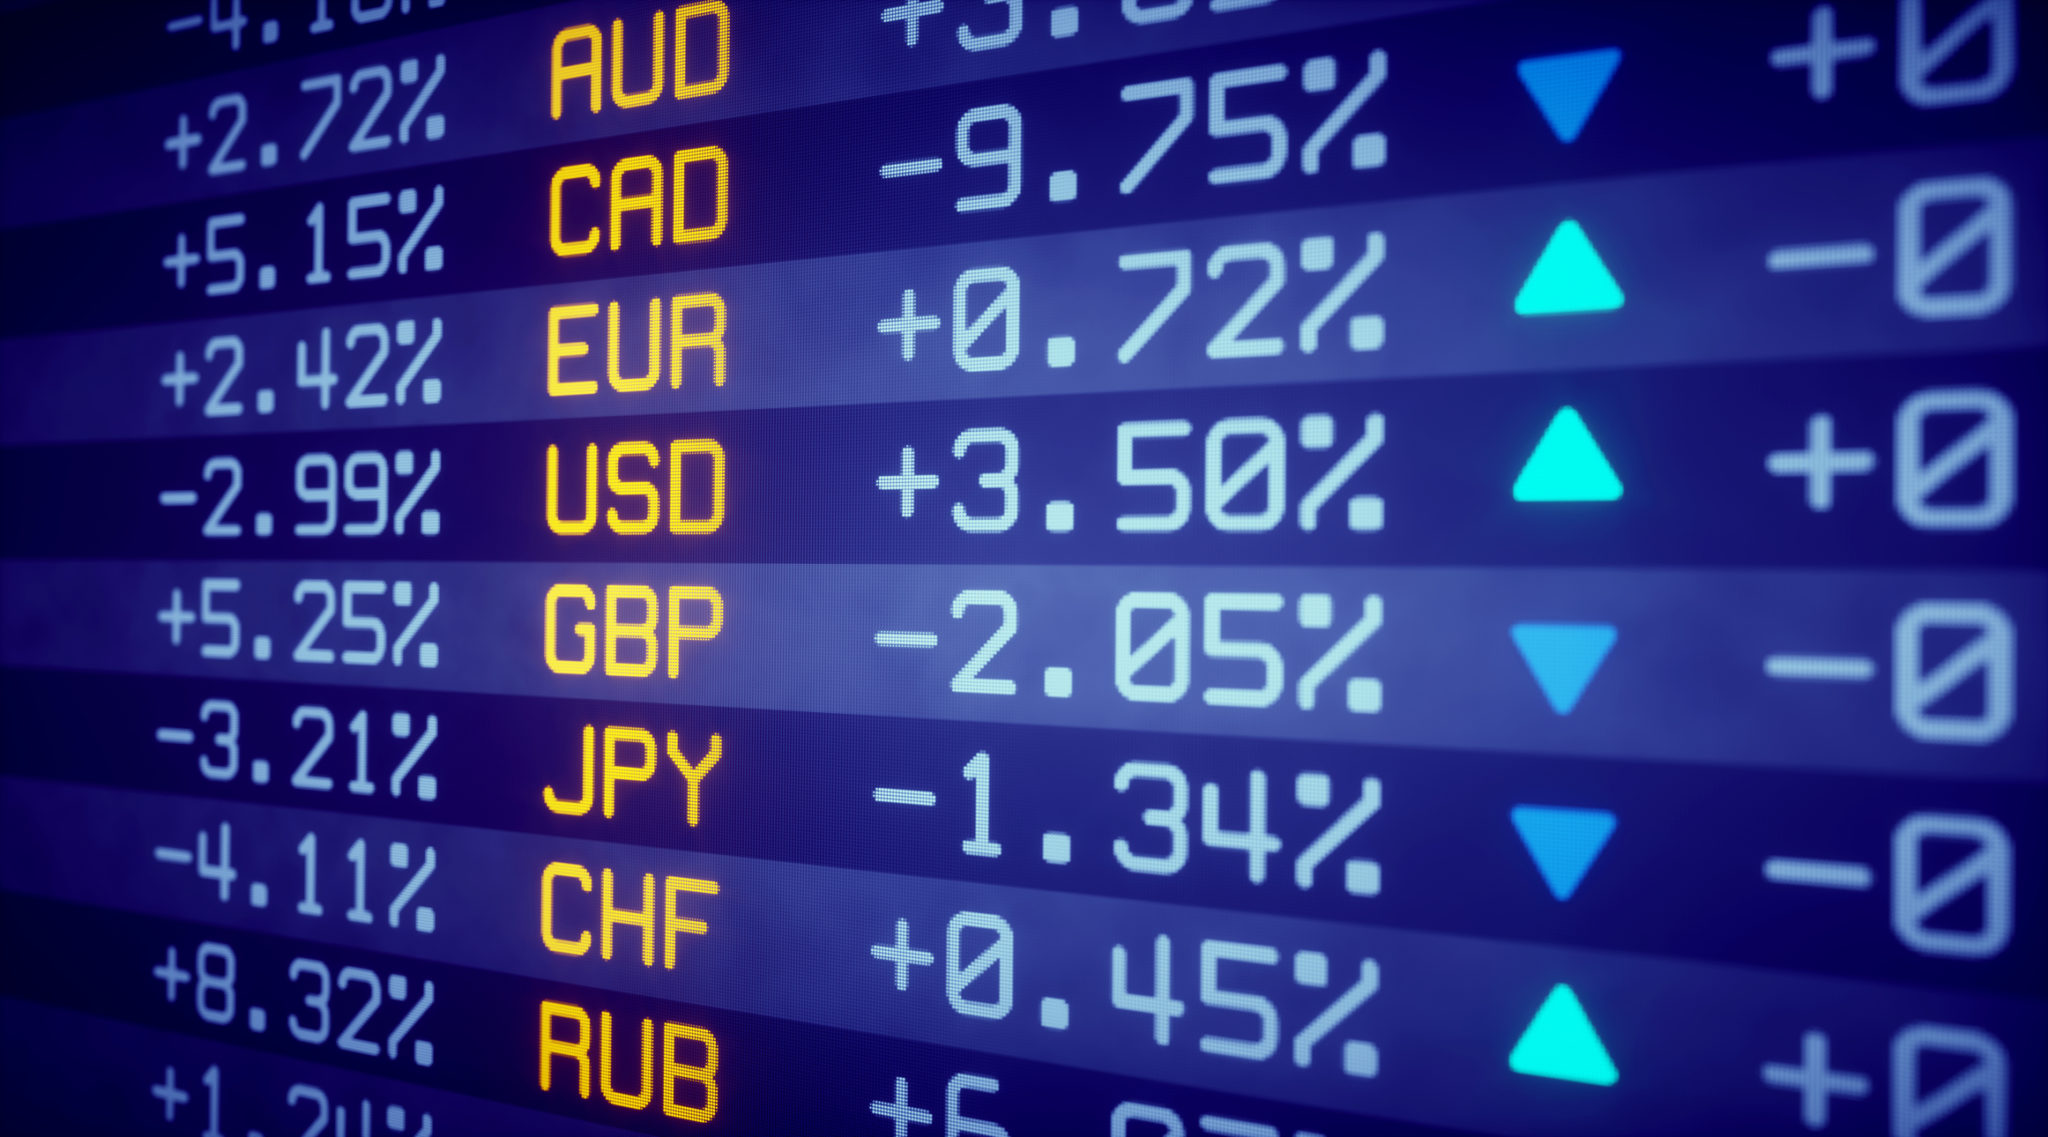 AMF Forex Options binaires Bourse risque